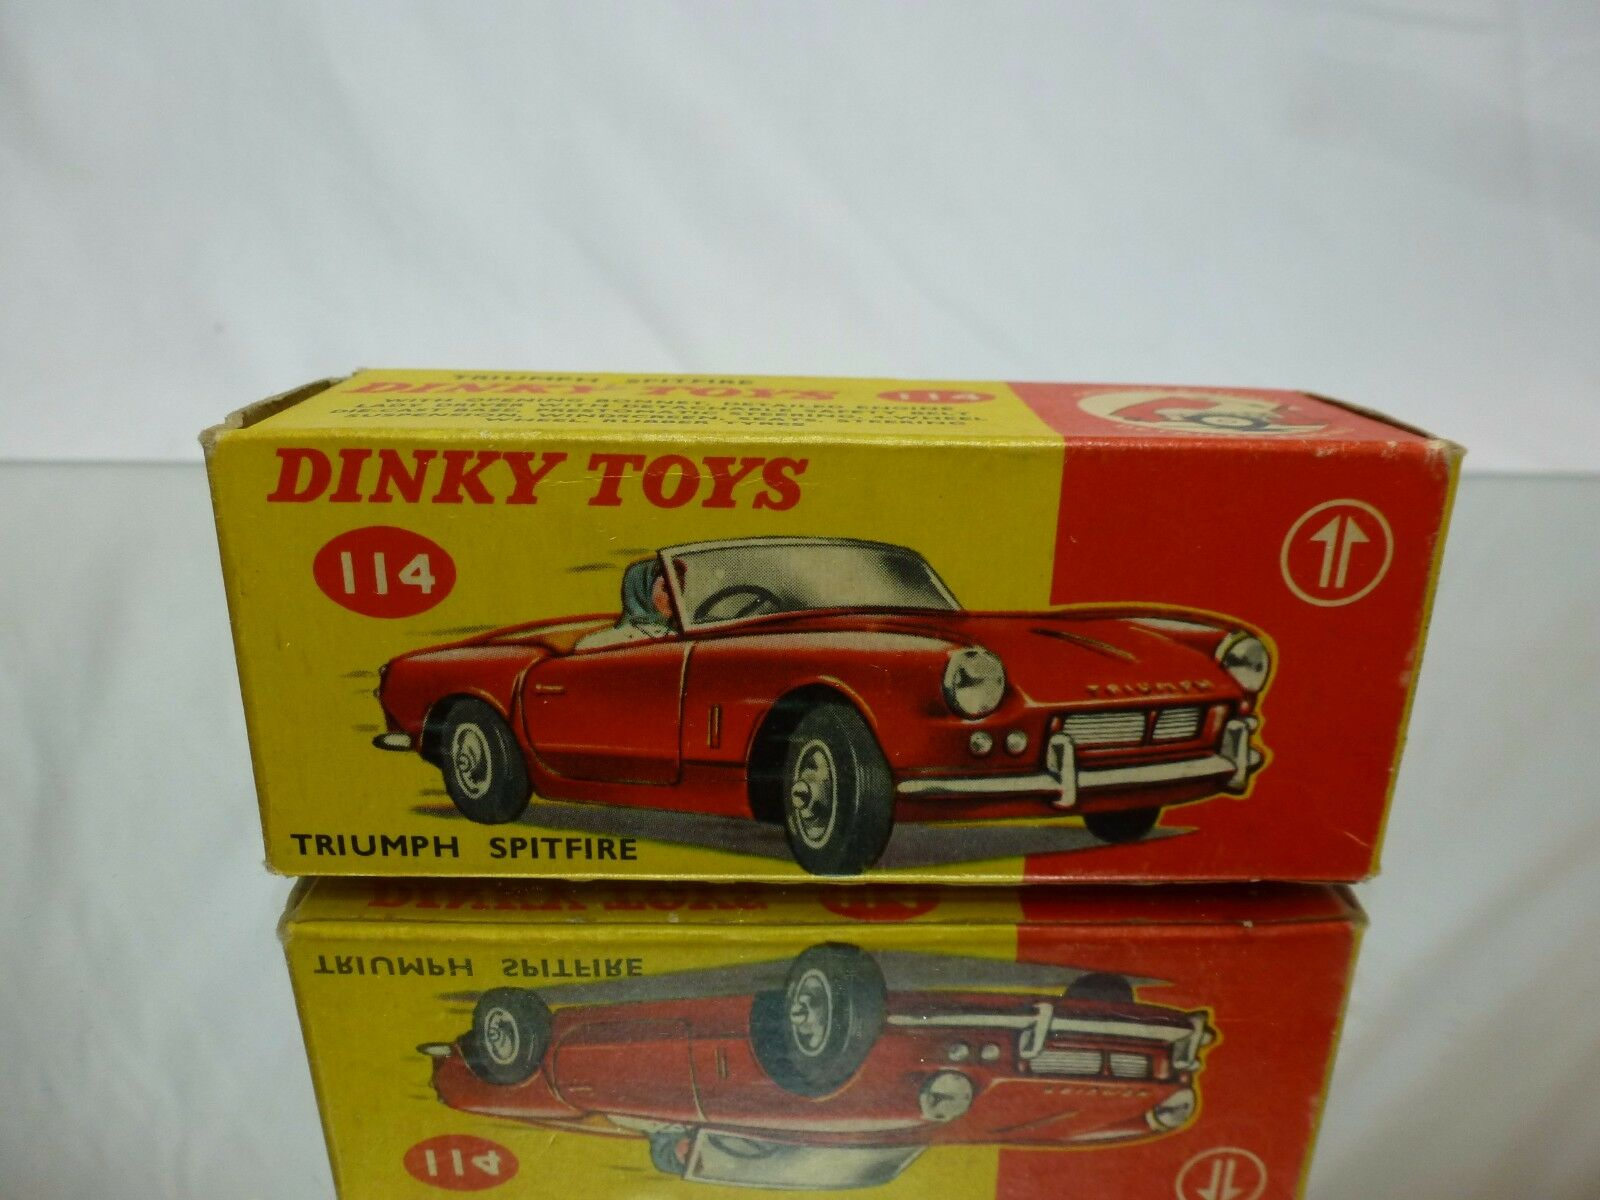 DINKY TOYS 114 BOX for TRIUMPH SPITFIRE - 1 43 - GOOD CONDITION - ONLY EMPTY BOX